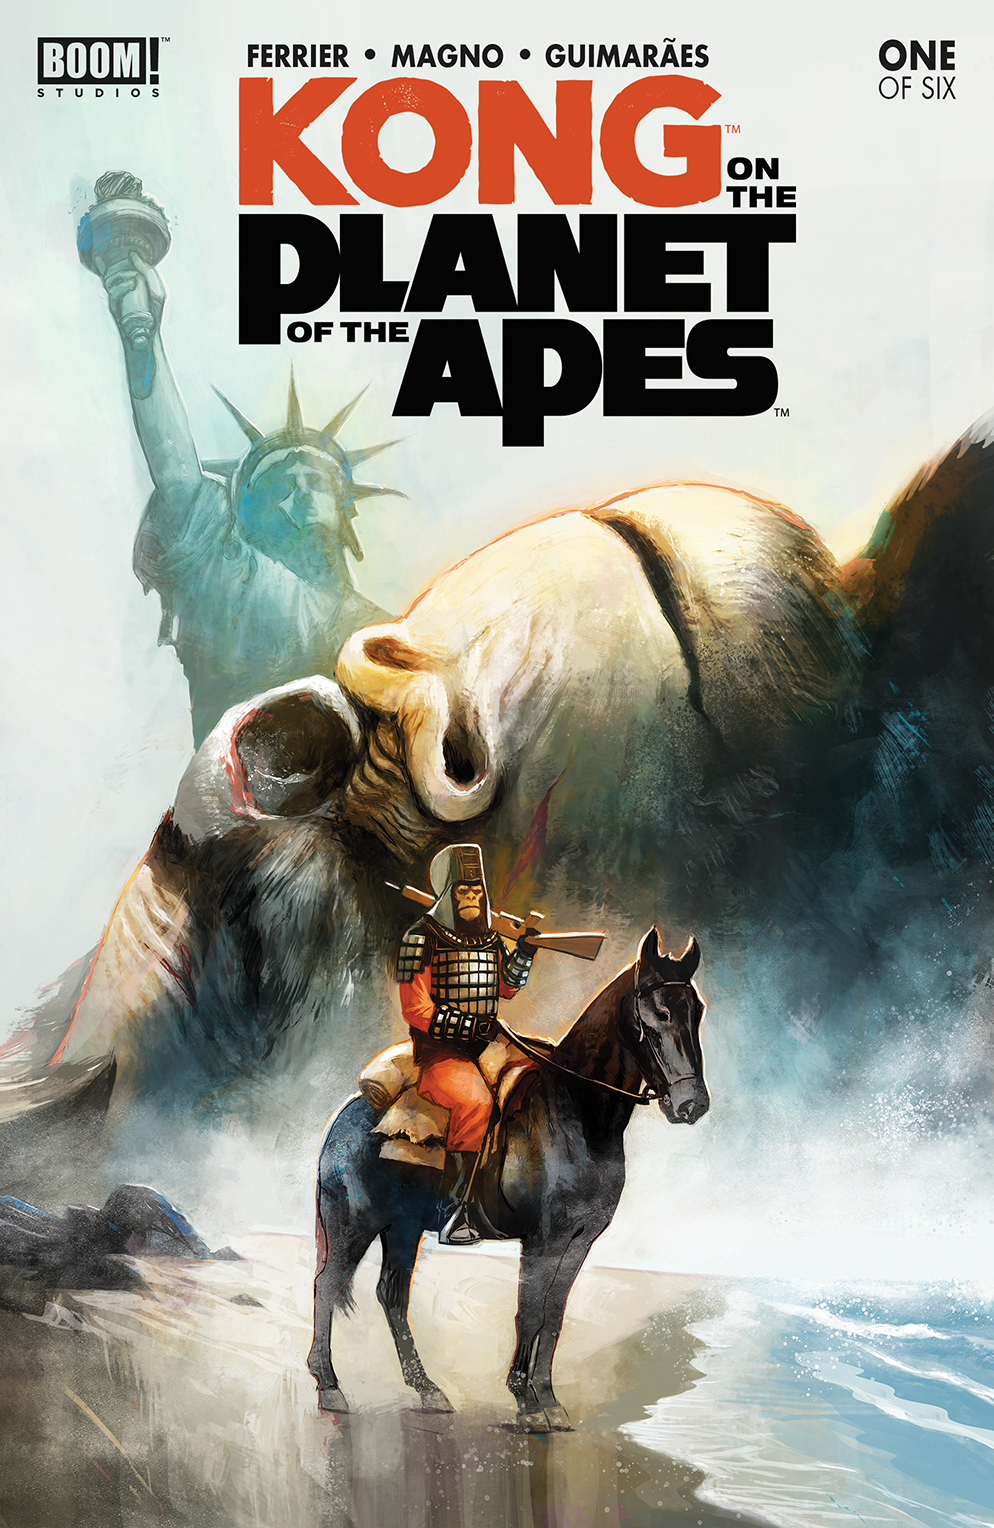 Kong Planet of the Apes